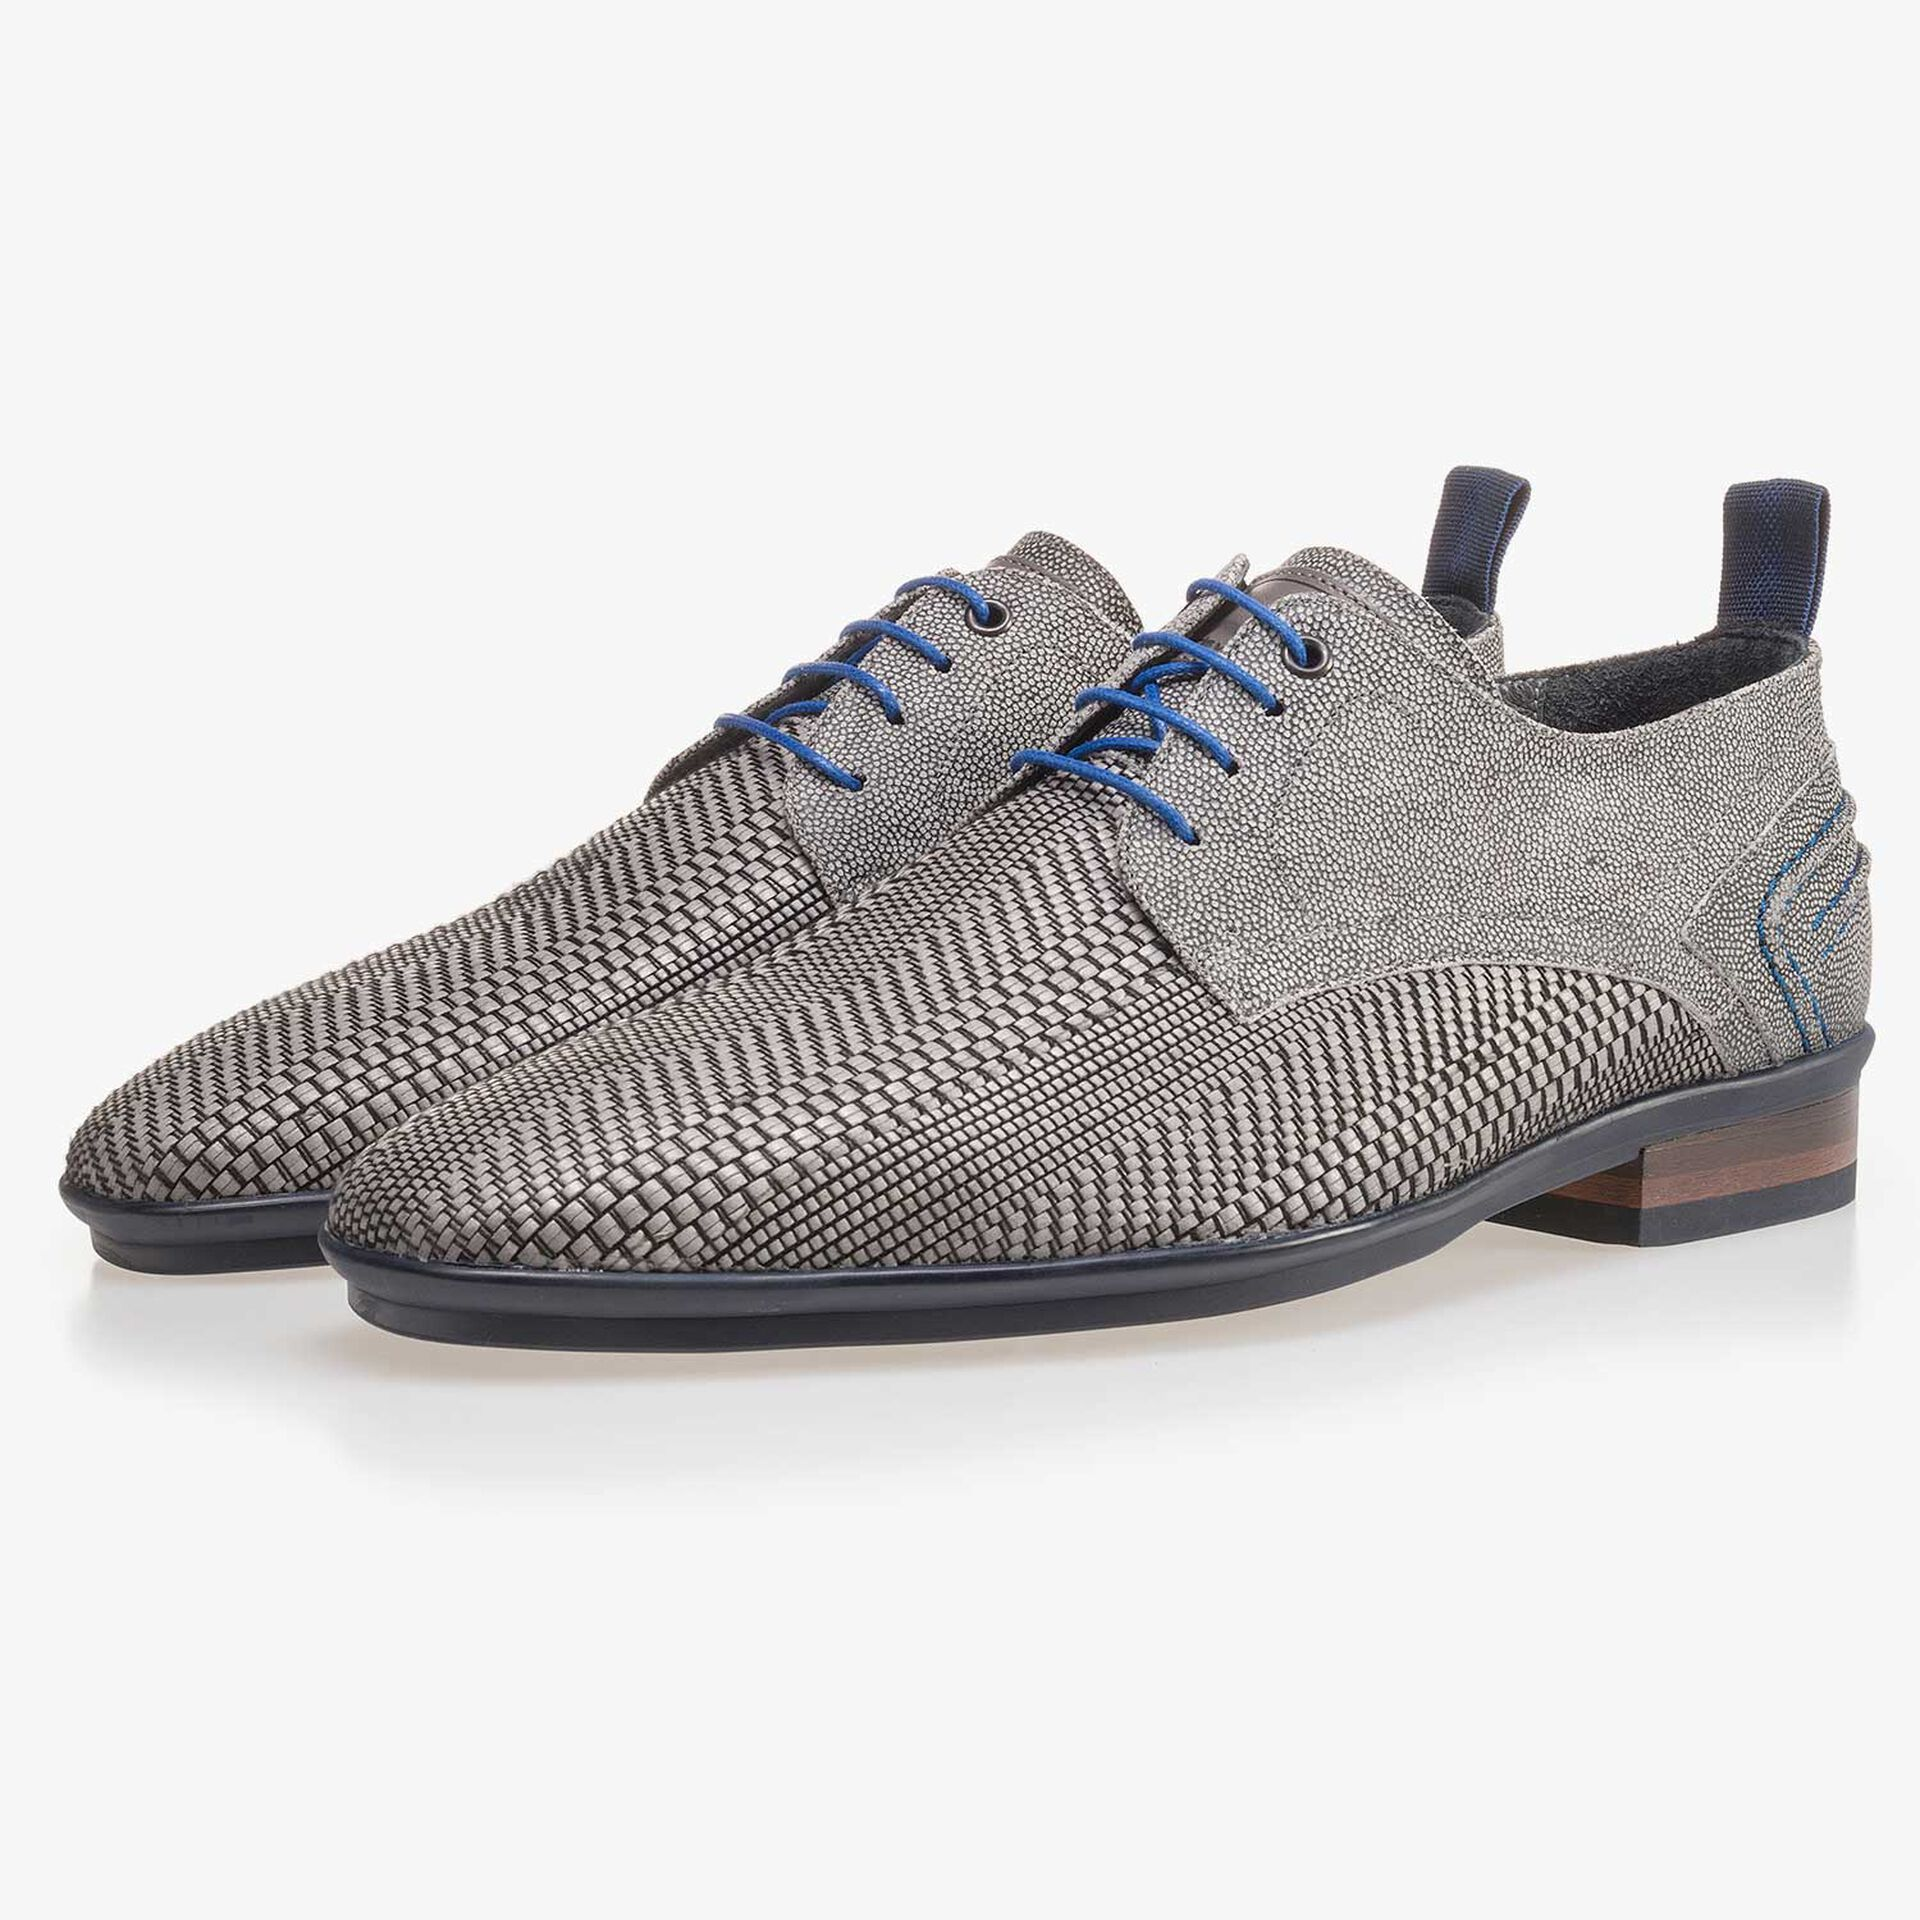 Grey lace shoe made of braided leather